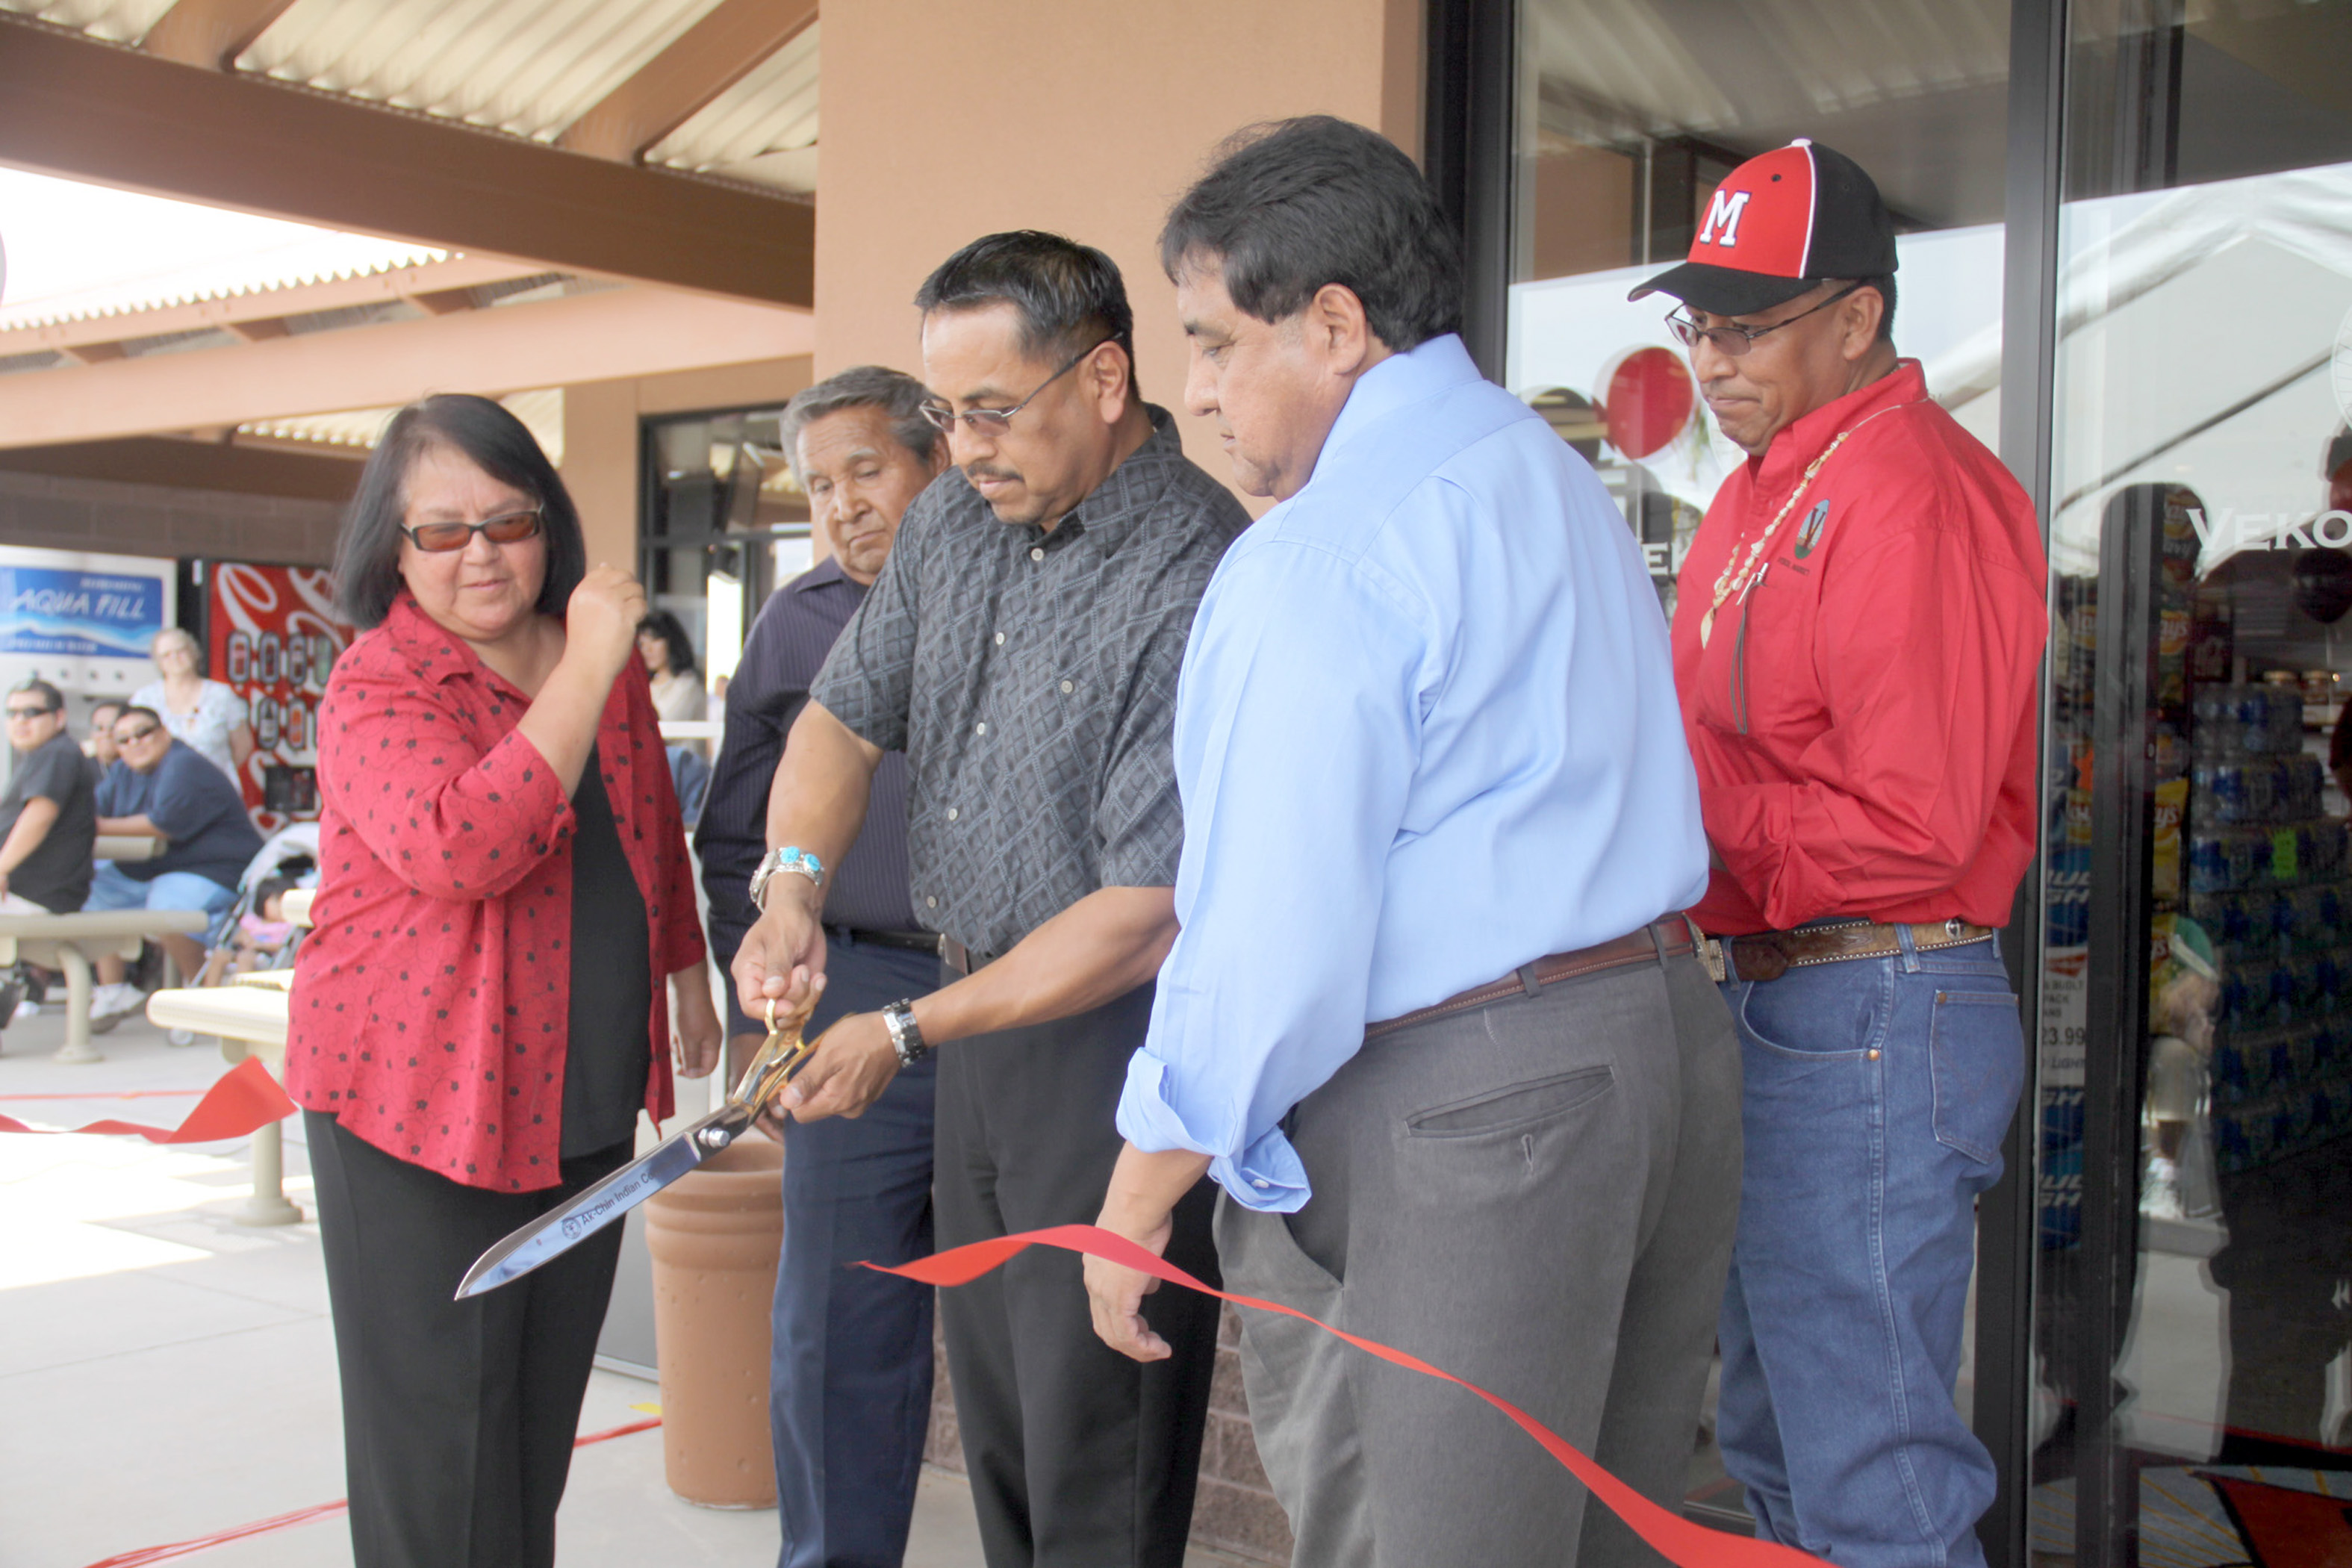 The Ak-Chin Tribal Council cutting the ribbon at the Vekol Market grand opening. From left: Delia M. Carlyle, Terry Enos, Chairman Louis Manuel Jr., Vice Chairman William J. Antone and Gabriel L. Lopez